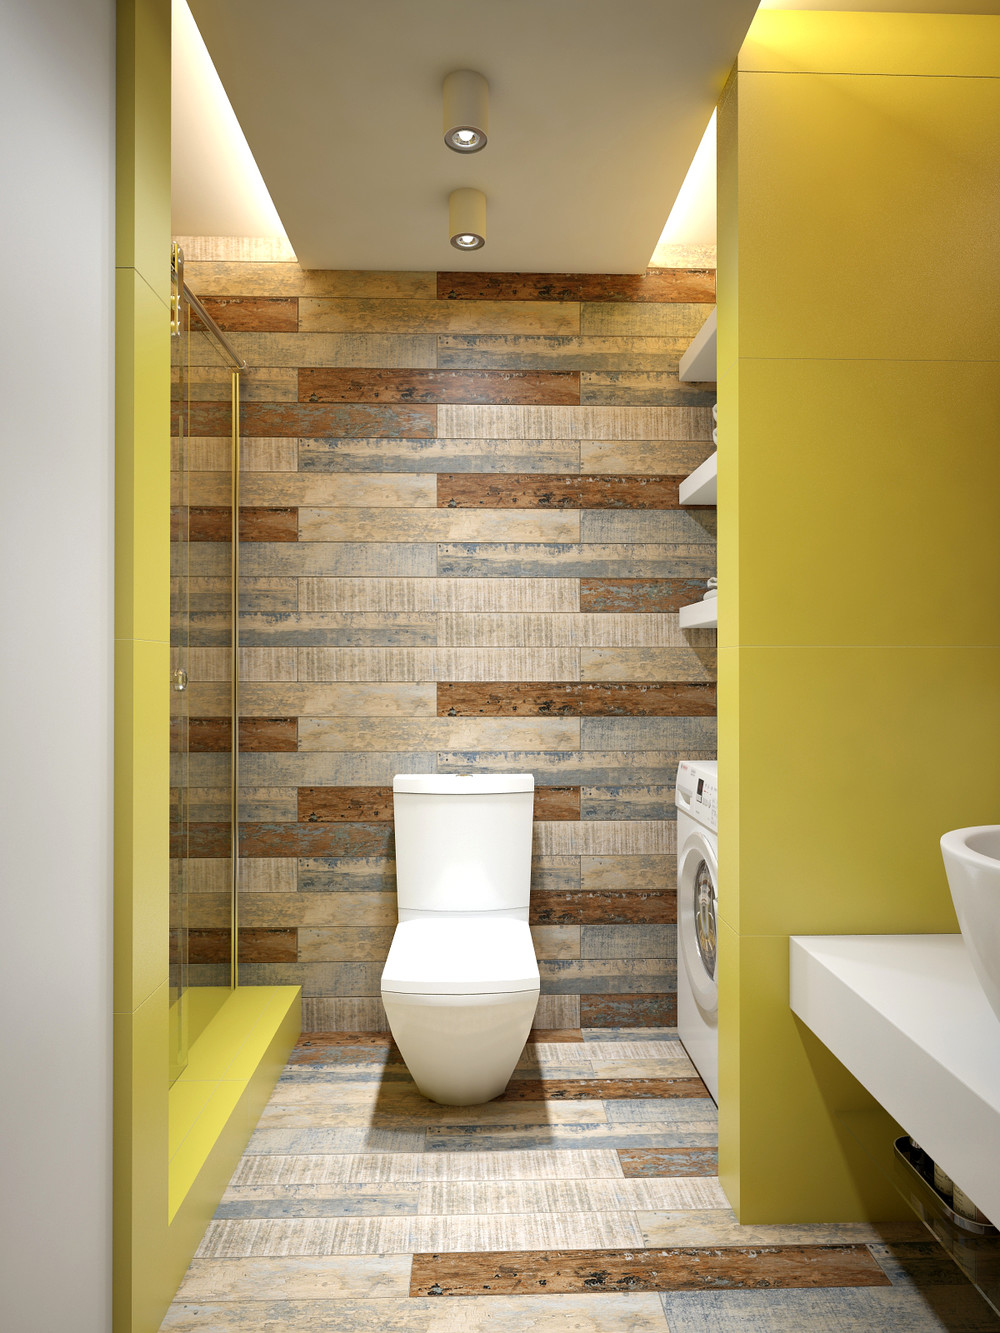 3 Open Studio Apartment Designs on Contemporary:kkgewzoz5M4= Small Bathroom Ideas  id=87293